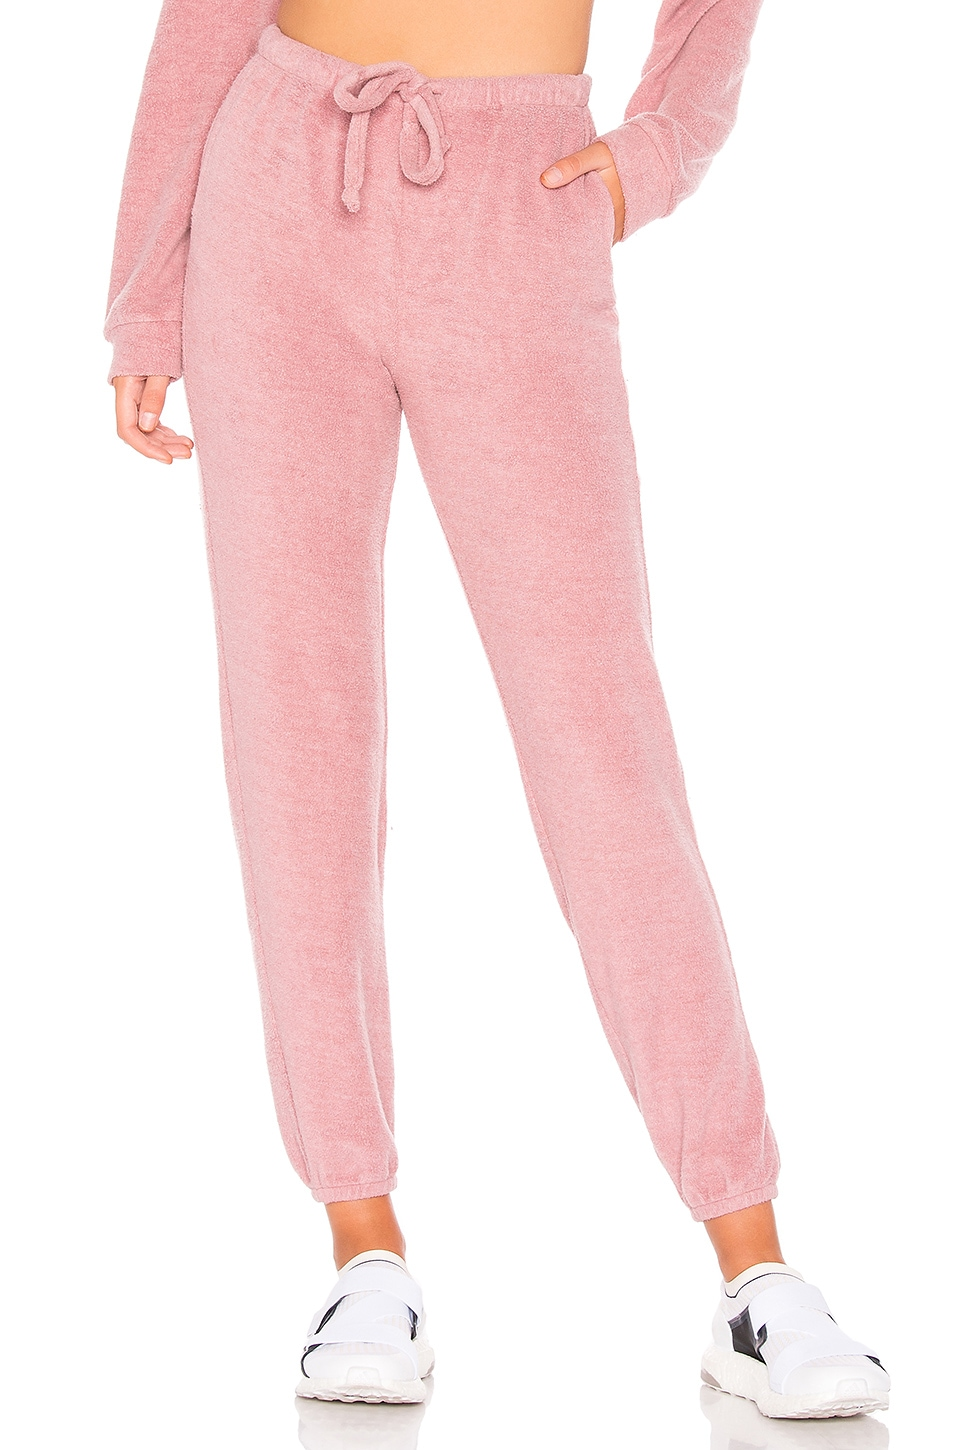 YEAR OF OURS Boyfriend Pant in Mauve